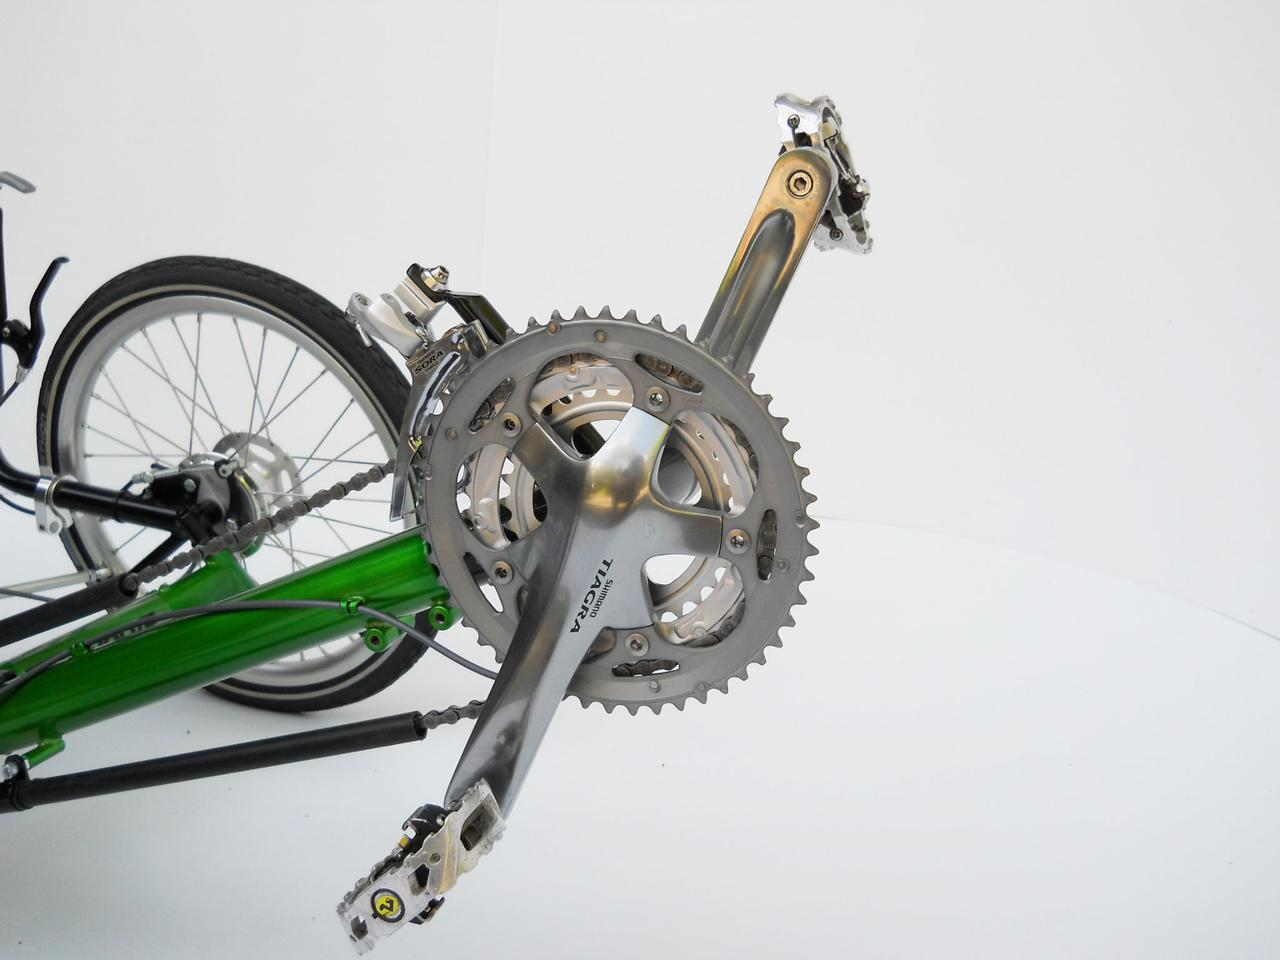 Evolve Trikes is still experimenting with different components for its folding recumbent trike